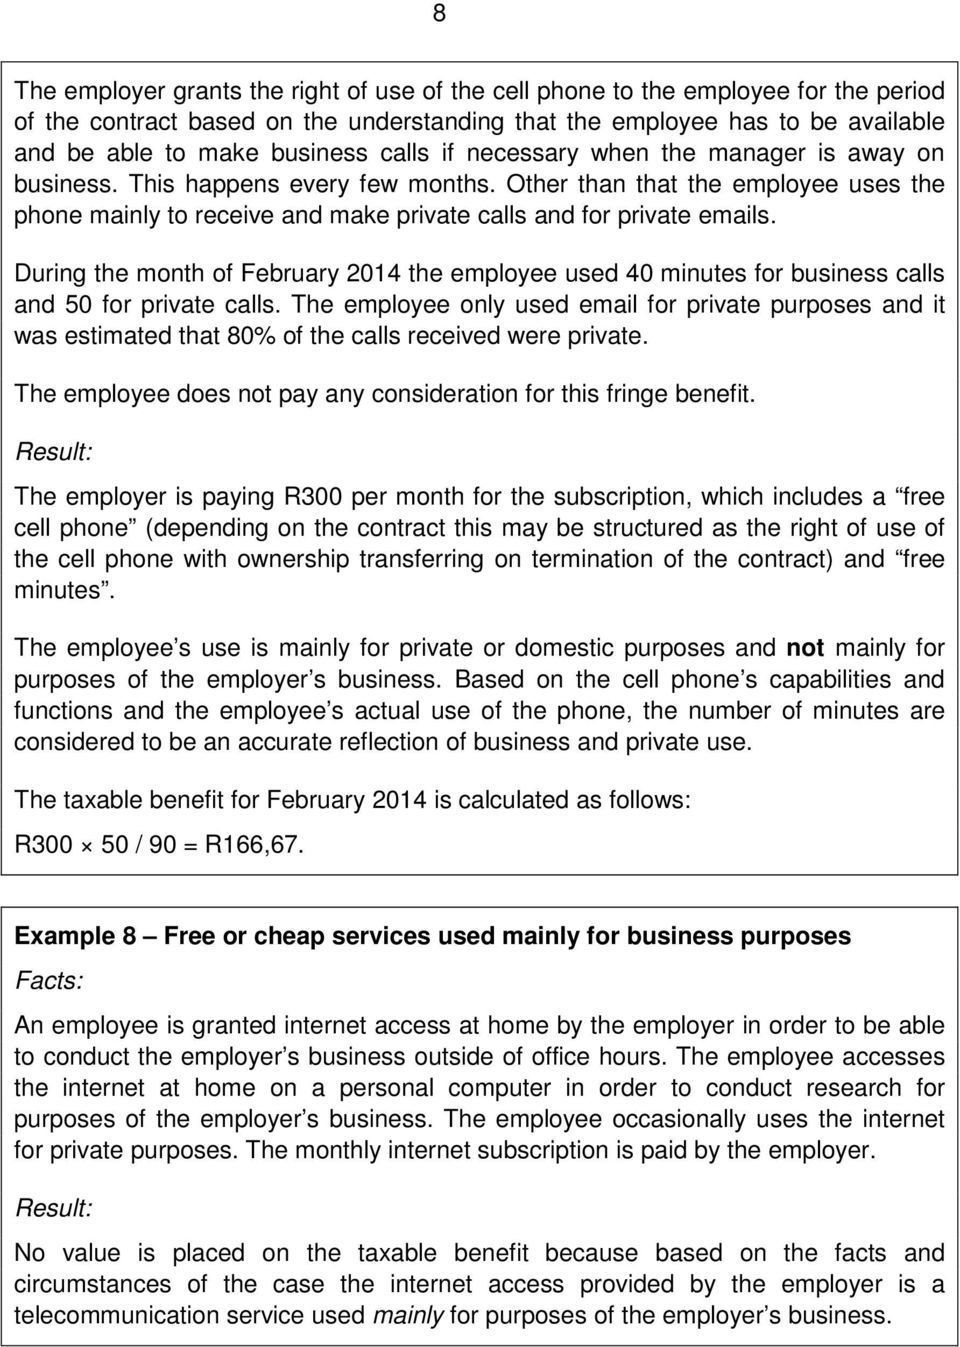 During the month of February 2014 the employee used 40 minutes for business calls and 50 for private calls.